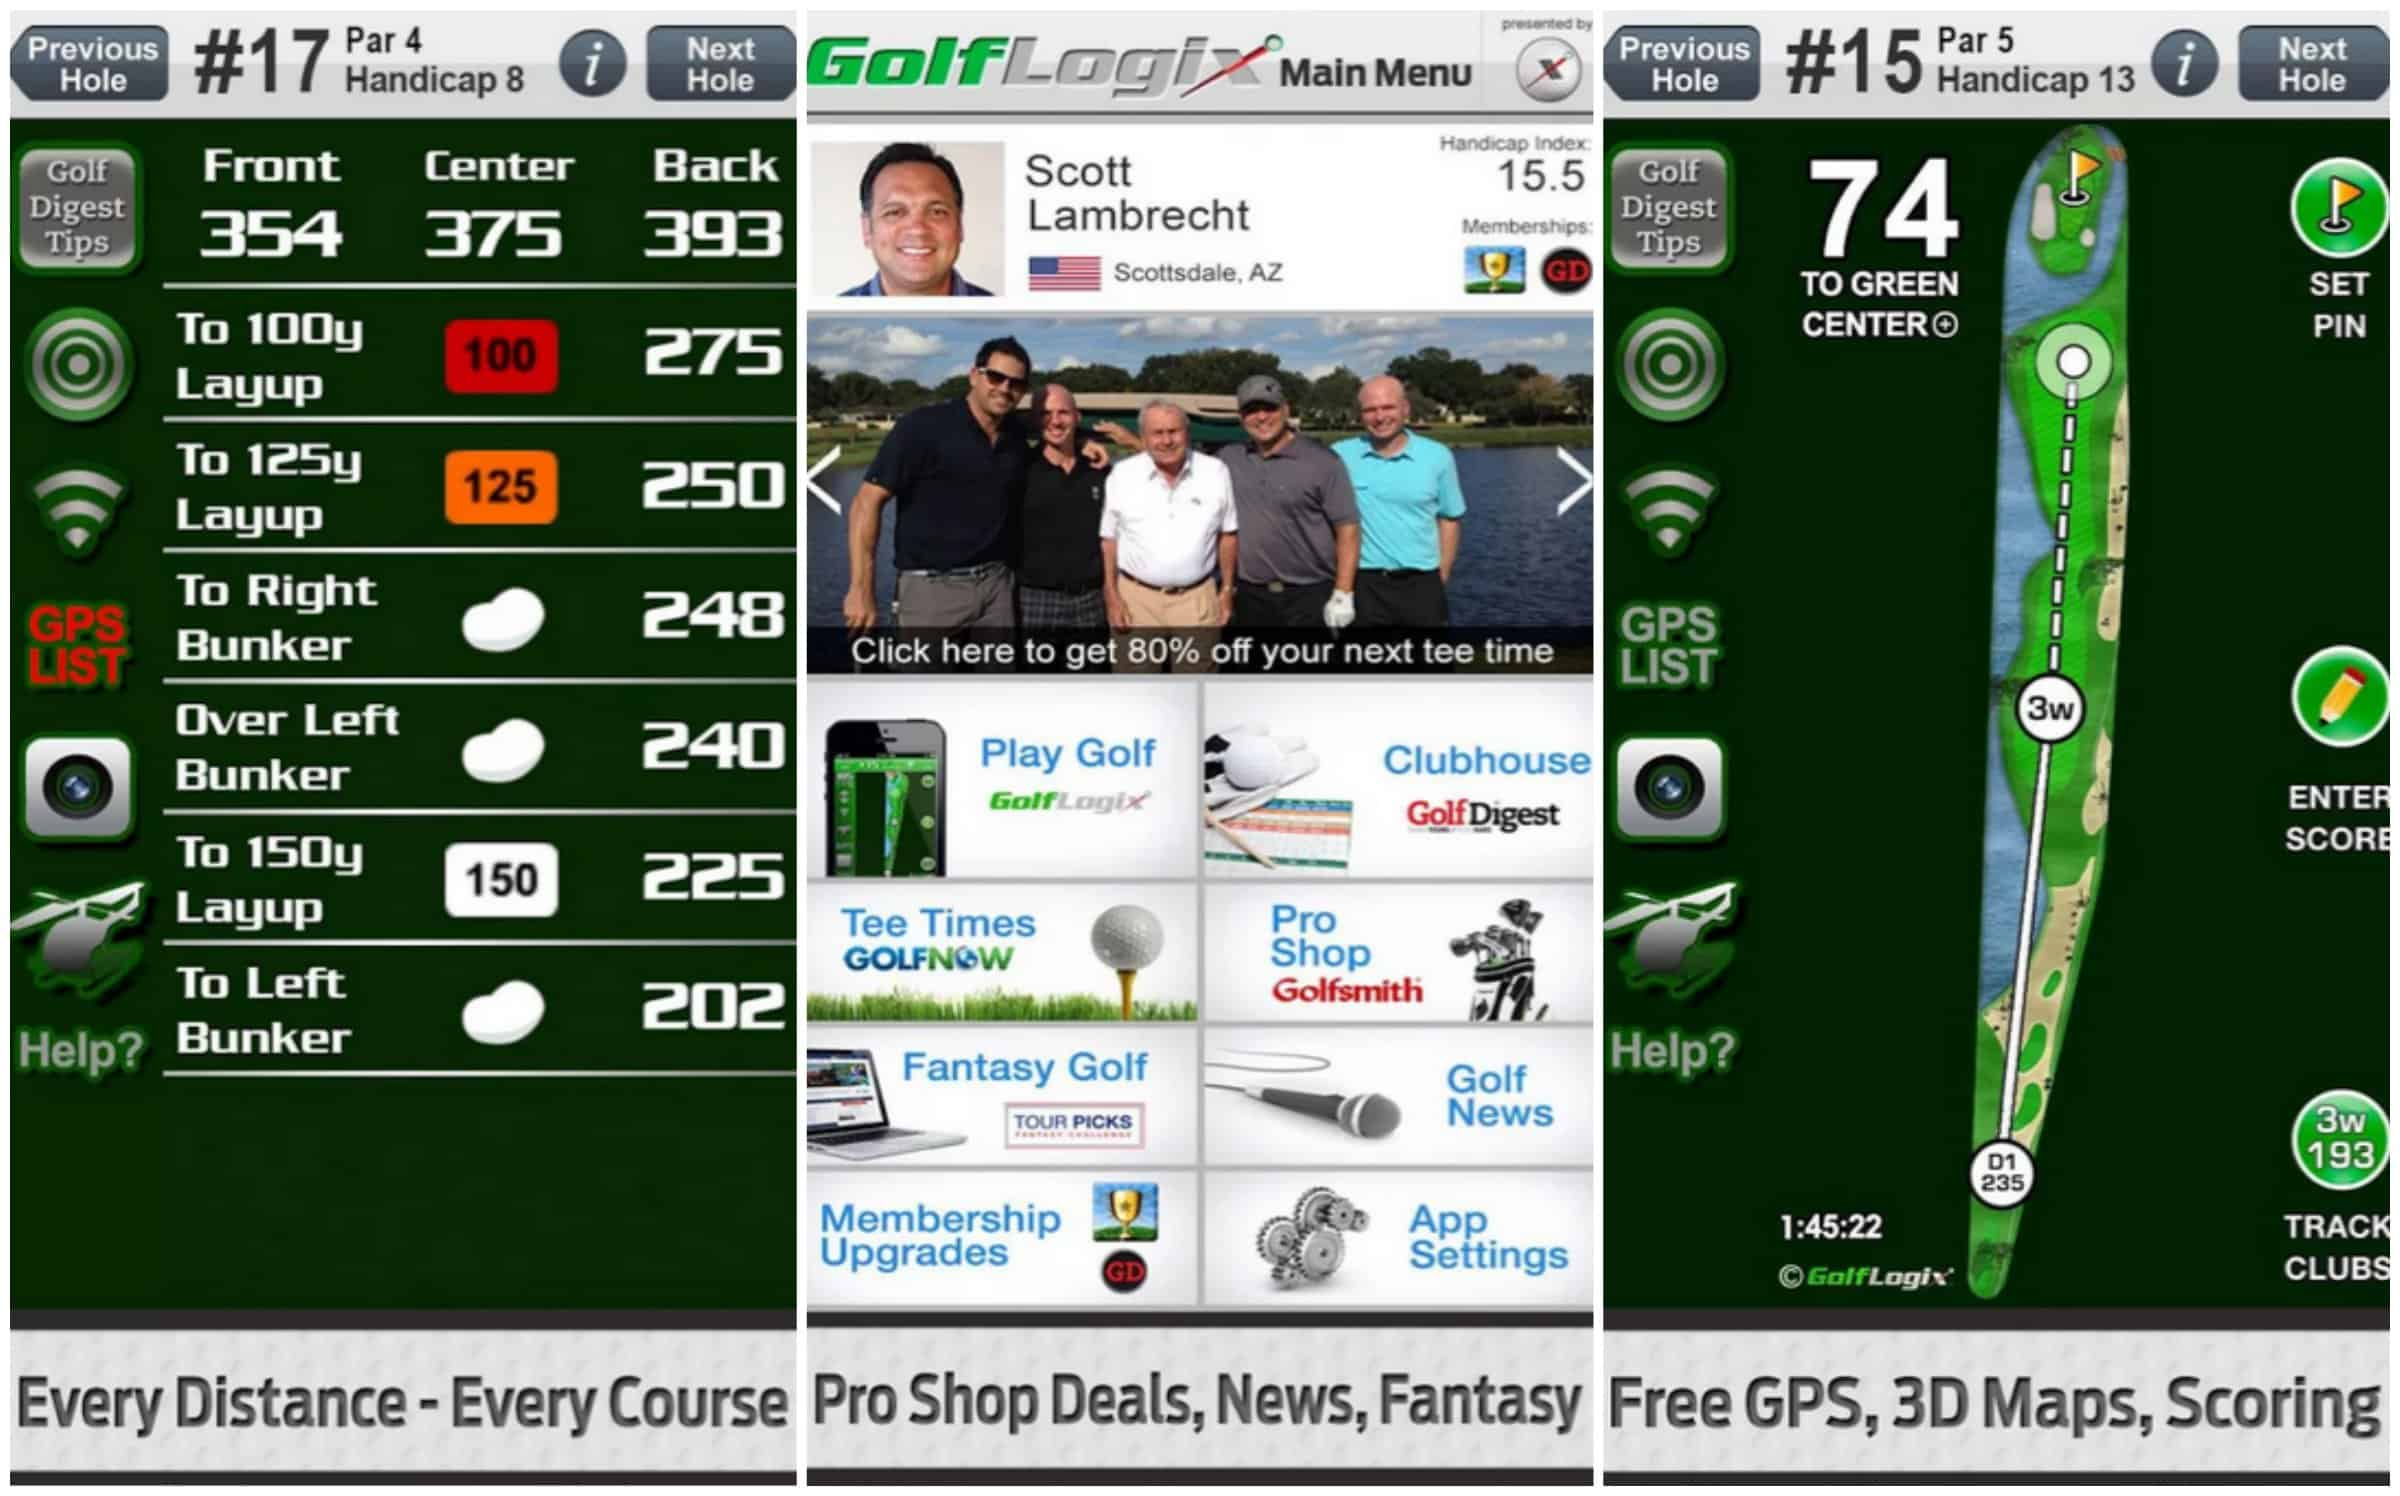 This One Again Does Offer Gps Based Functionality However That Is Only Part Of The Deal With This App Probably Like Your Local Golf Venue